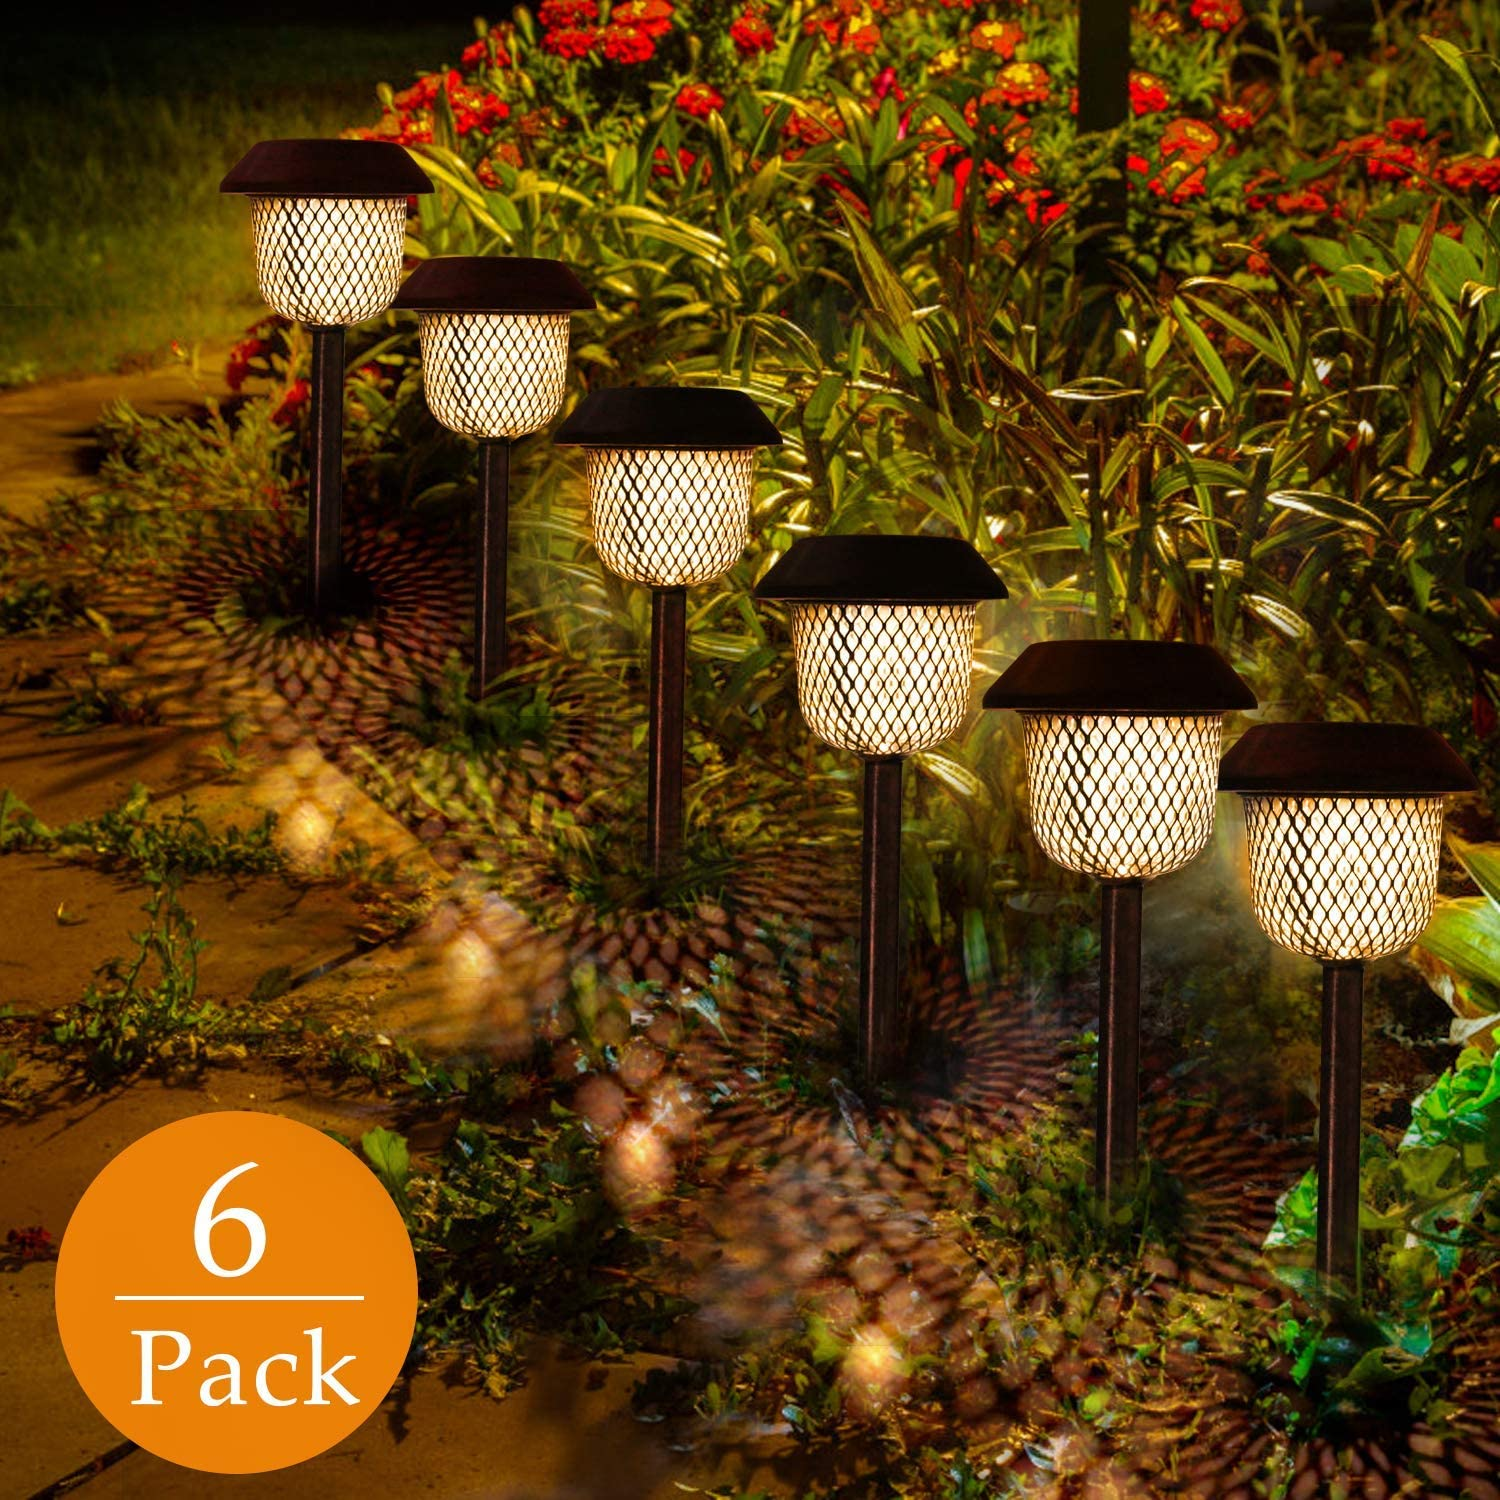 12x STAINLESS STEEL SOLAR LIGHTS POWERED GARDEN POST PATH LED LAWN PATIO